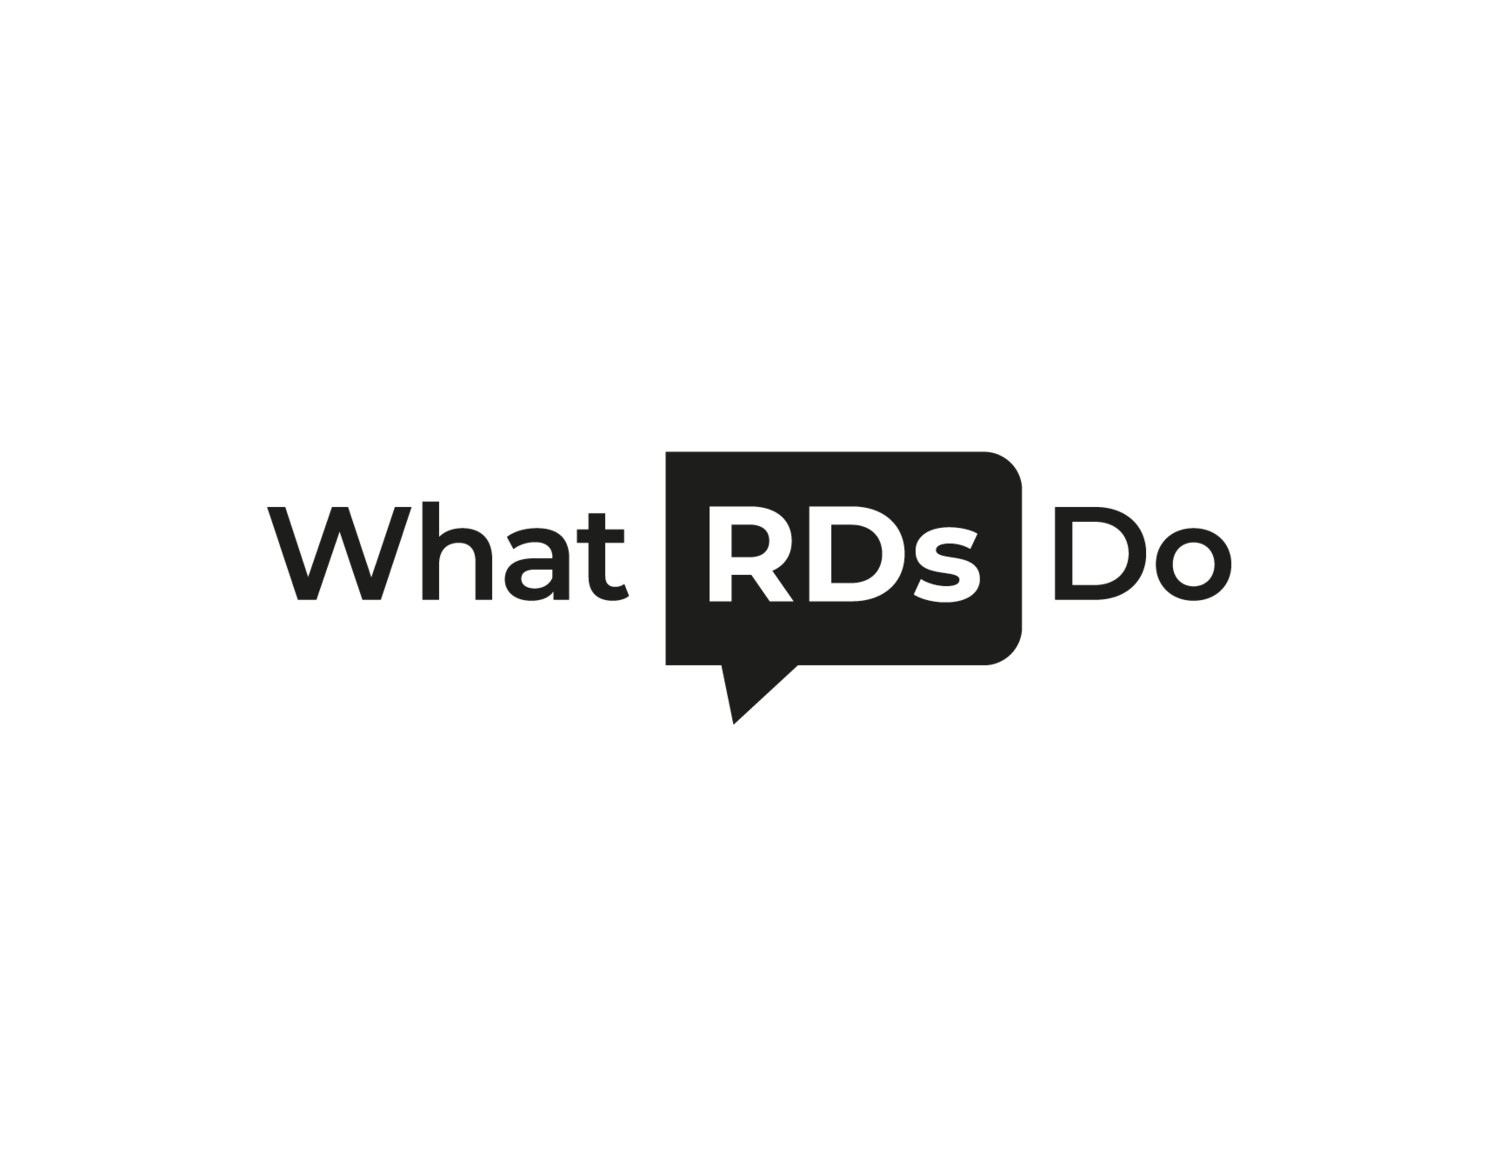 What RDs do